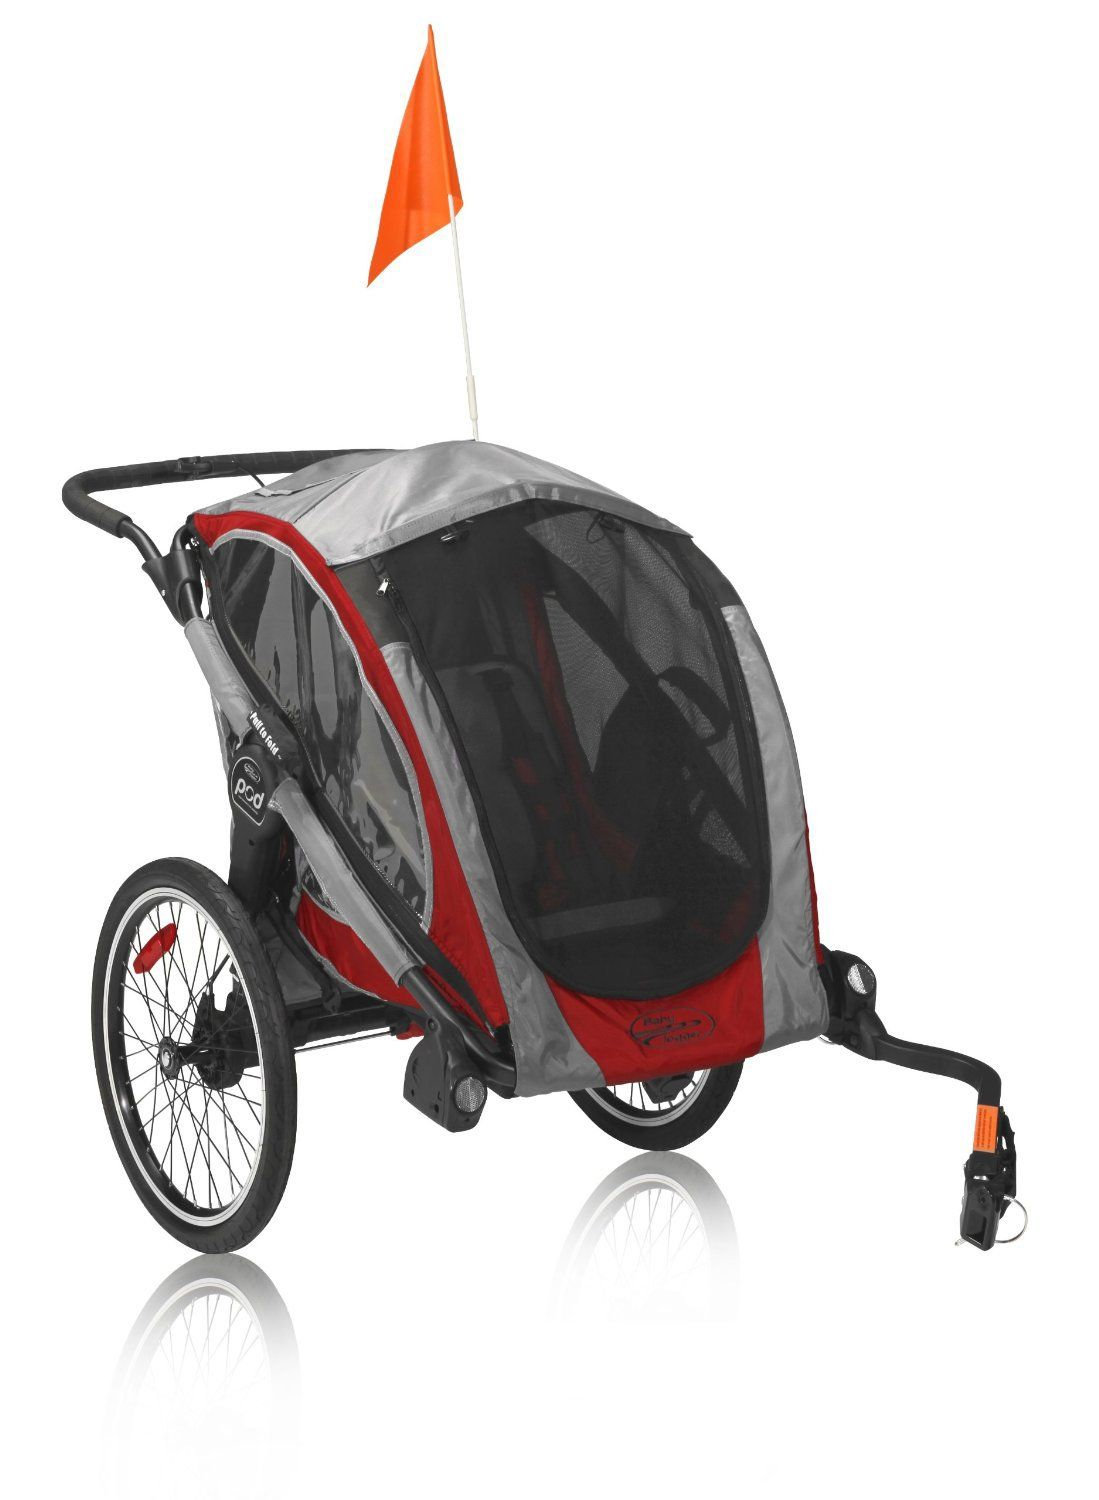 Features a wheel hitch and tow bar for converting the Baby